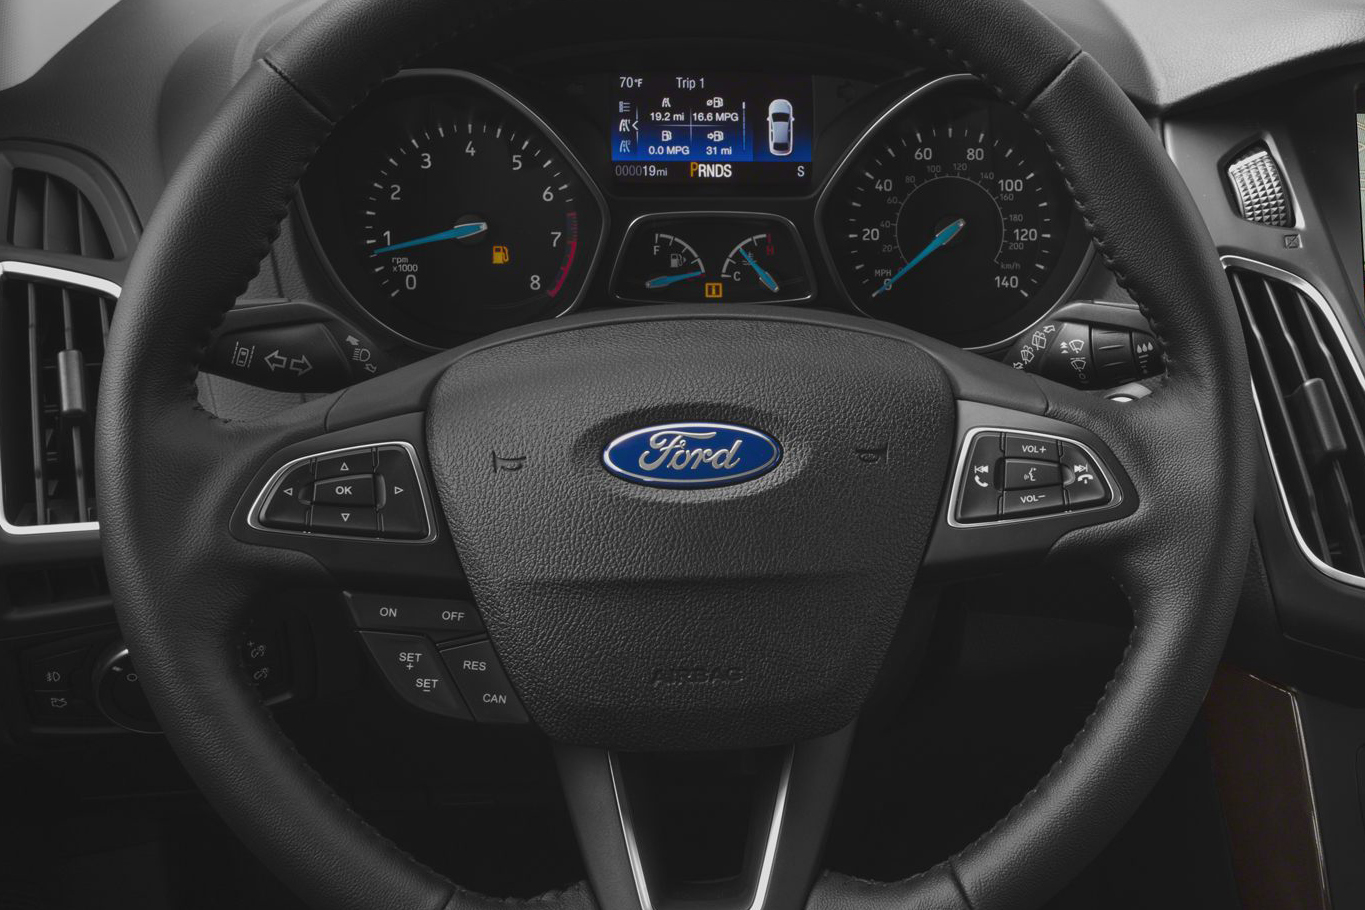 Ford Focus, Fiesta Transmission Settlement: What Owners Should Know